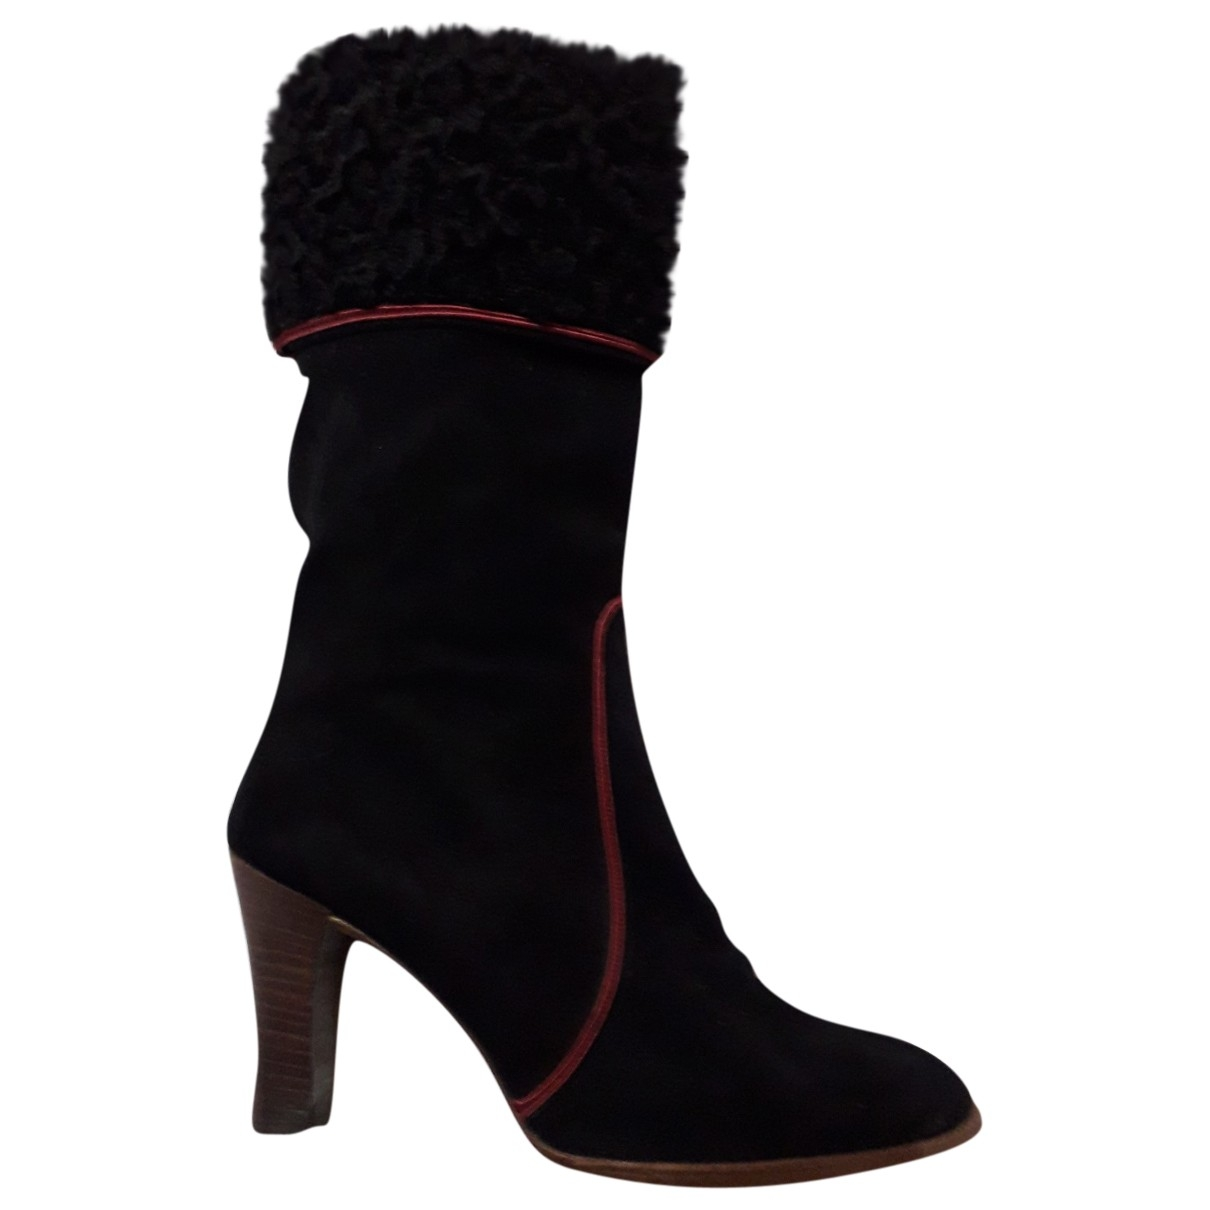 Botas de Astracan Yves Saint Laurent